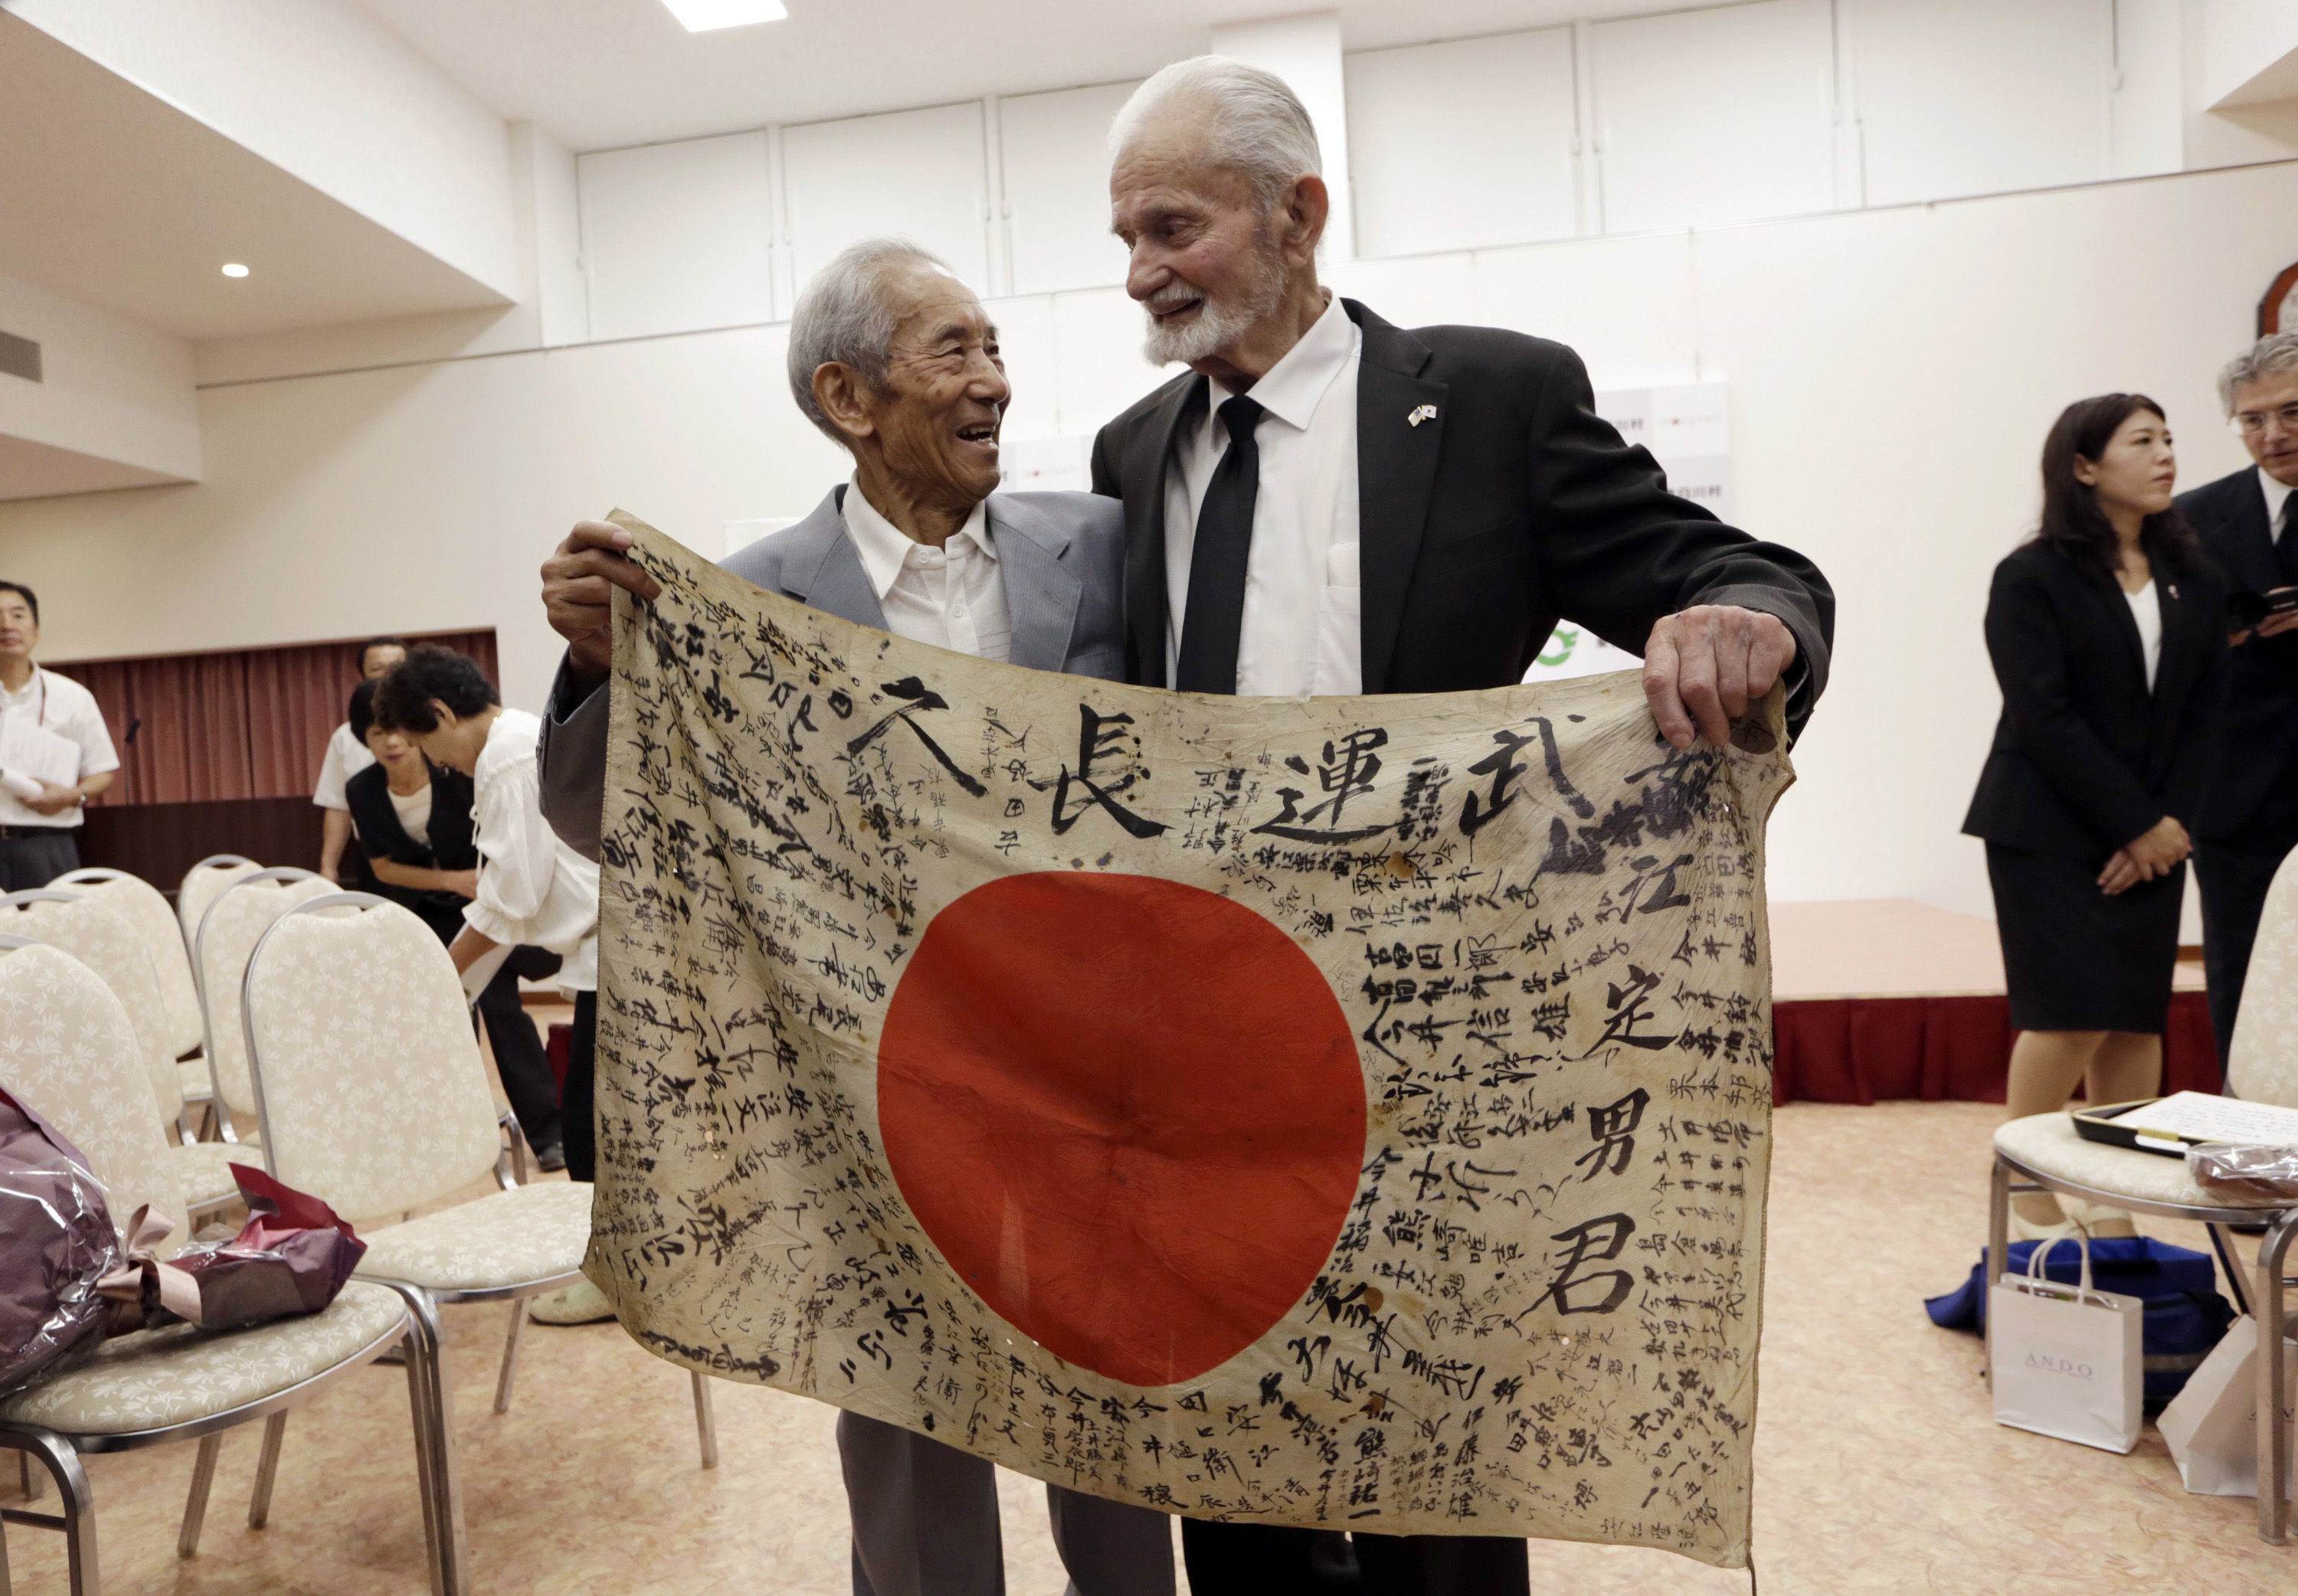 WWII veteran Marvin Strombo, right, and Tatsuya Yasue, 89-year-old farmer, hold a Japanese flag with autographed messages which was owned by his brother Sadao Yasue, who was killed in the Pacific during World Work II, during a ceremony in Higashishirakawa, in central Japan's Gifu prefecture Tuesday, Aug. 15, 2017. Strombo has returned to the fallen soldier's family the calligraphy-covered flag he took from the man's body 73 years ago. (Eugene Hoshiko/AP)